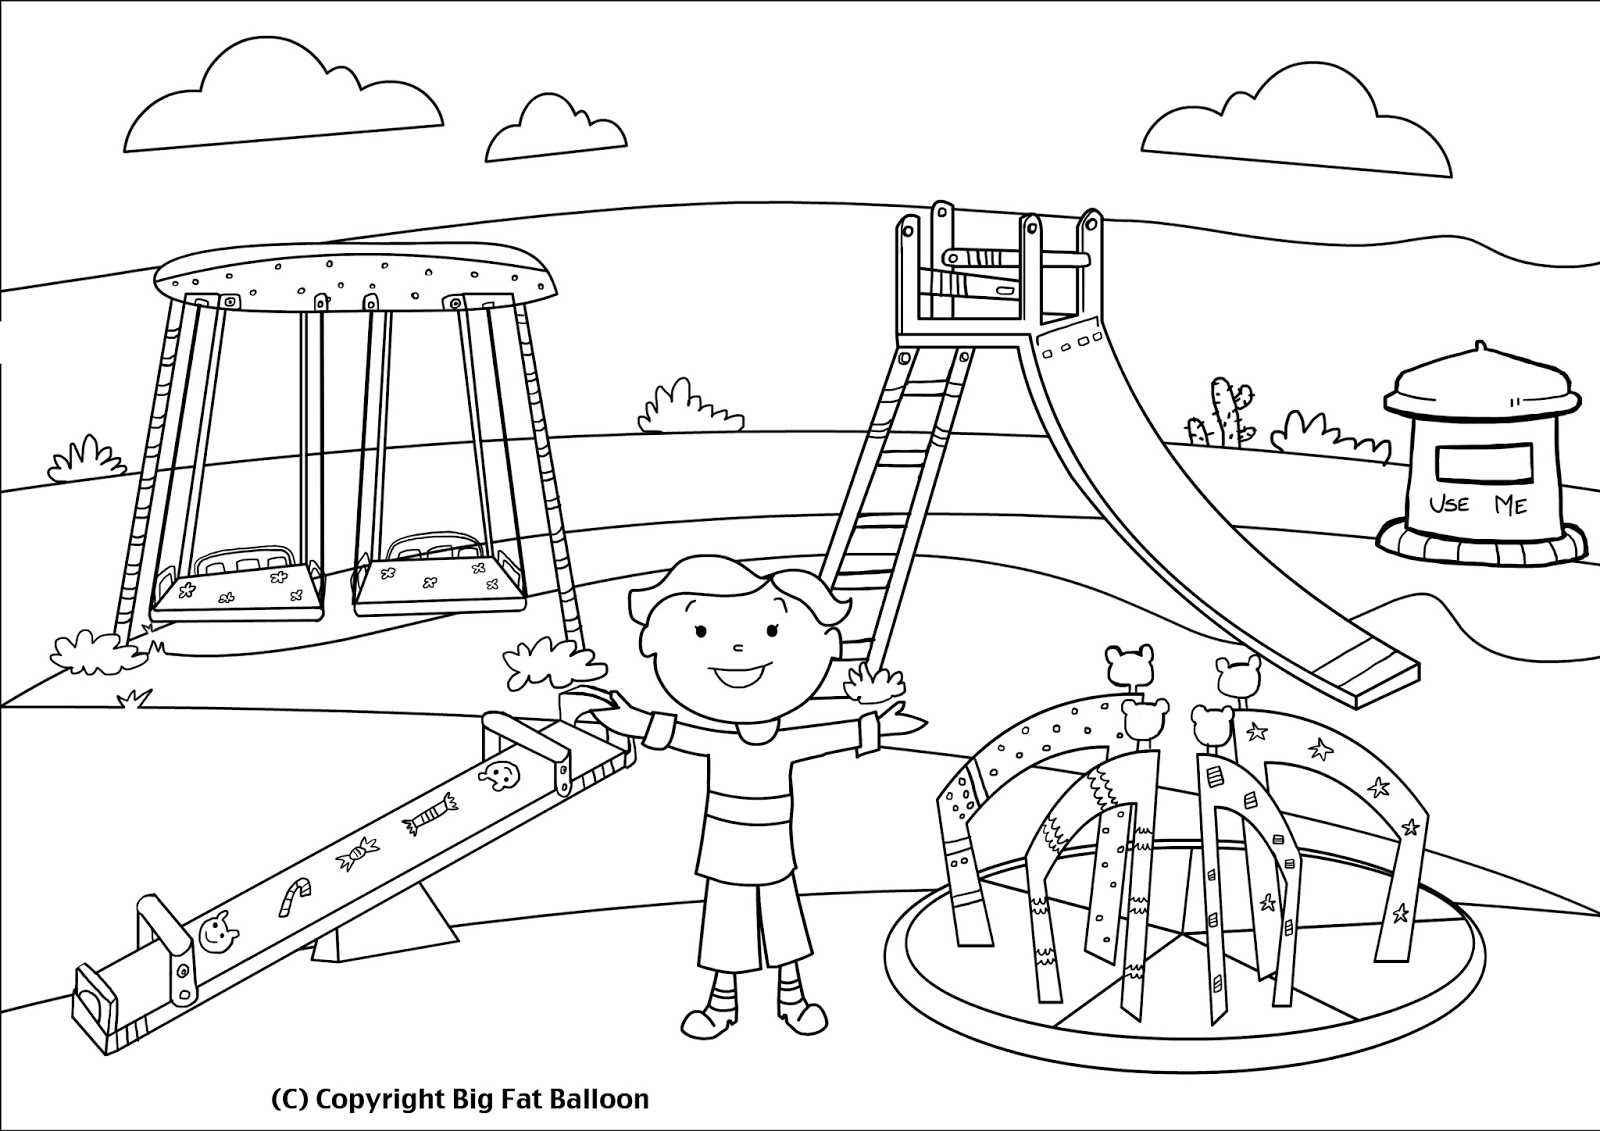 Playground clipart black and white. Kids on station